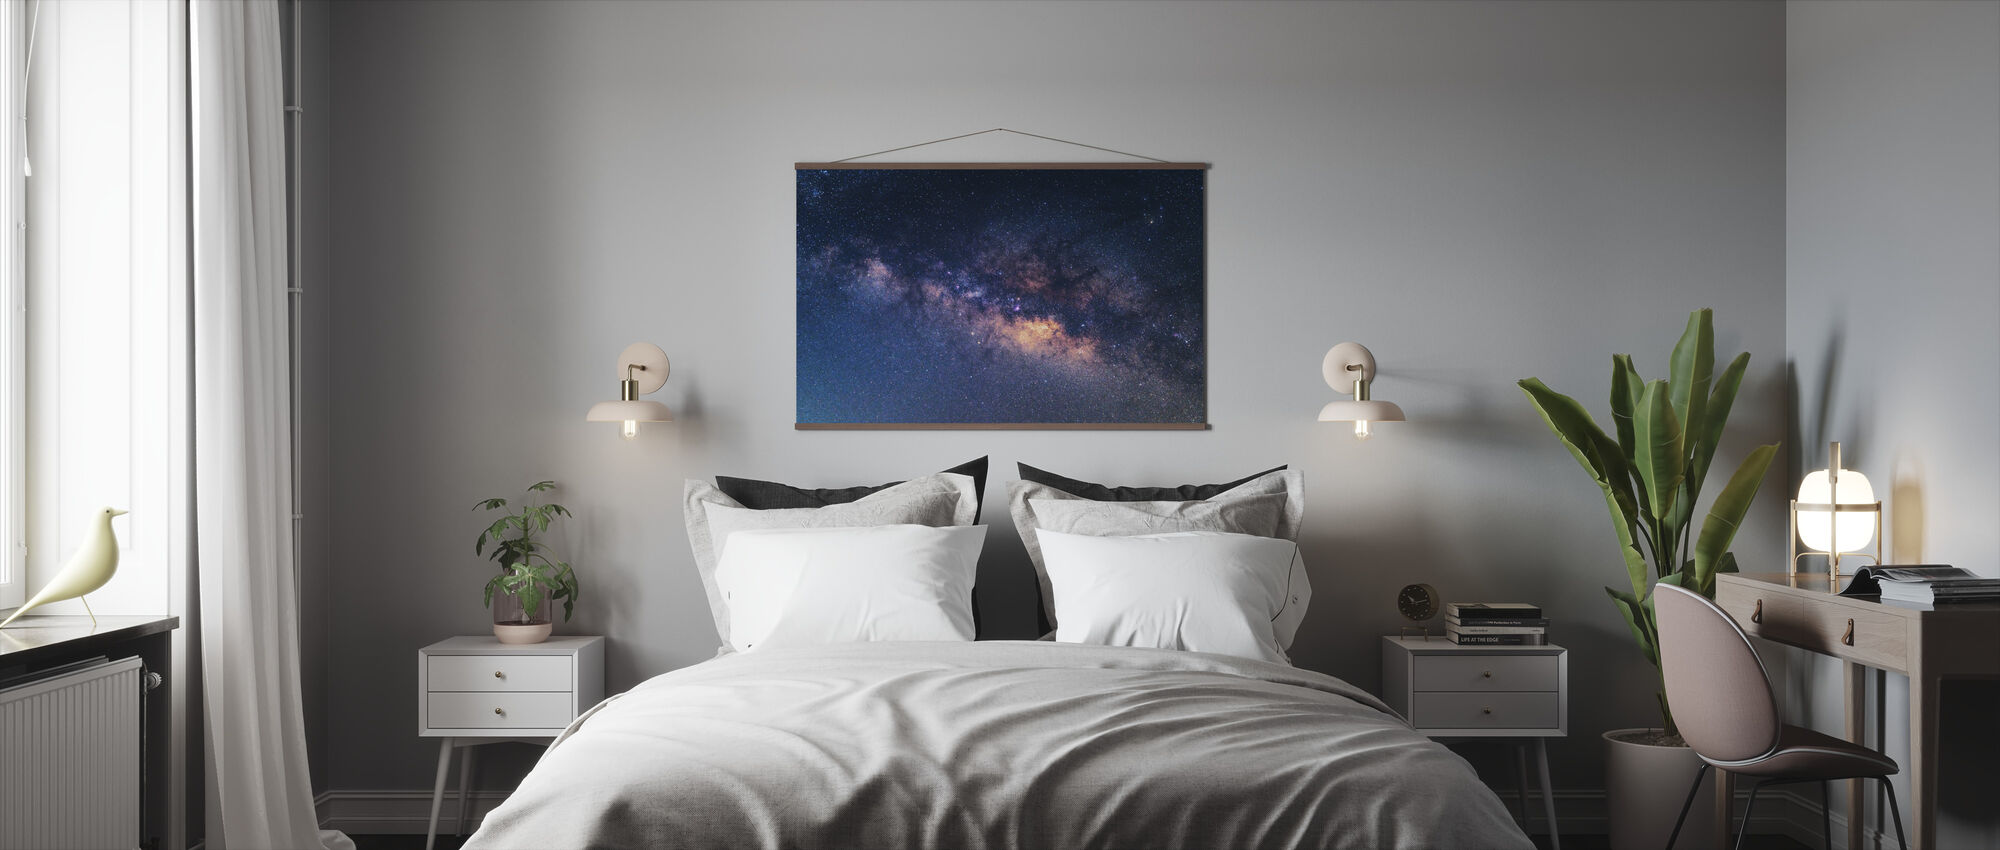 Galaxy - Poster - Bedroom